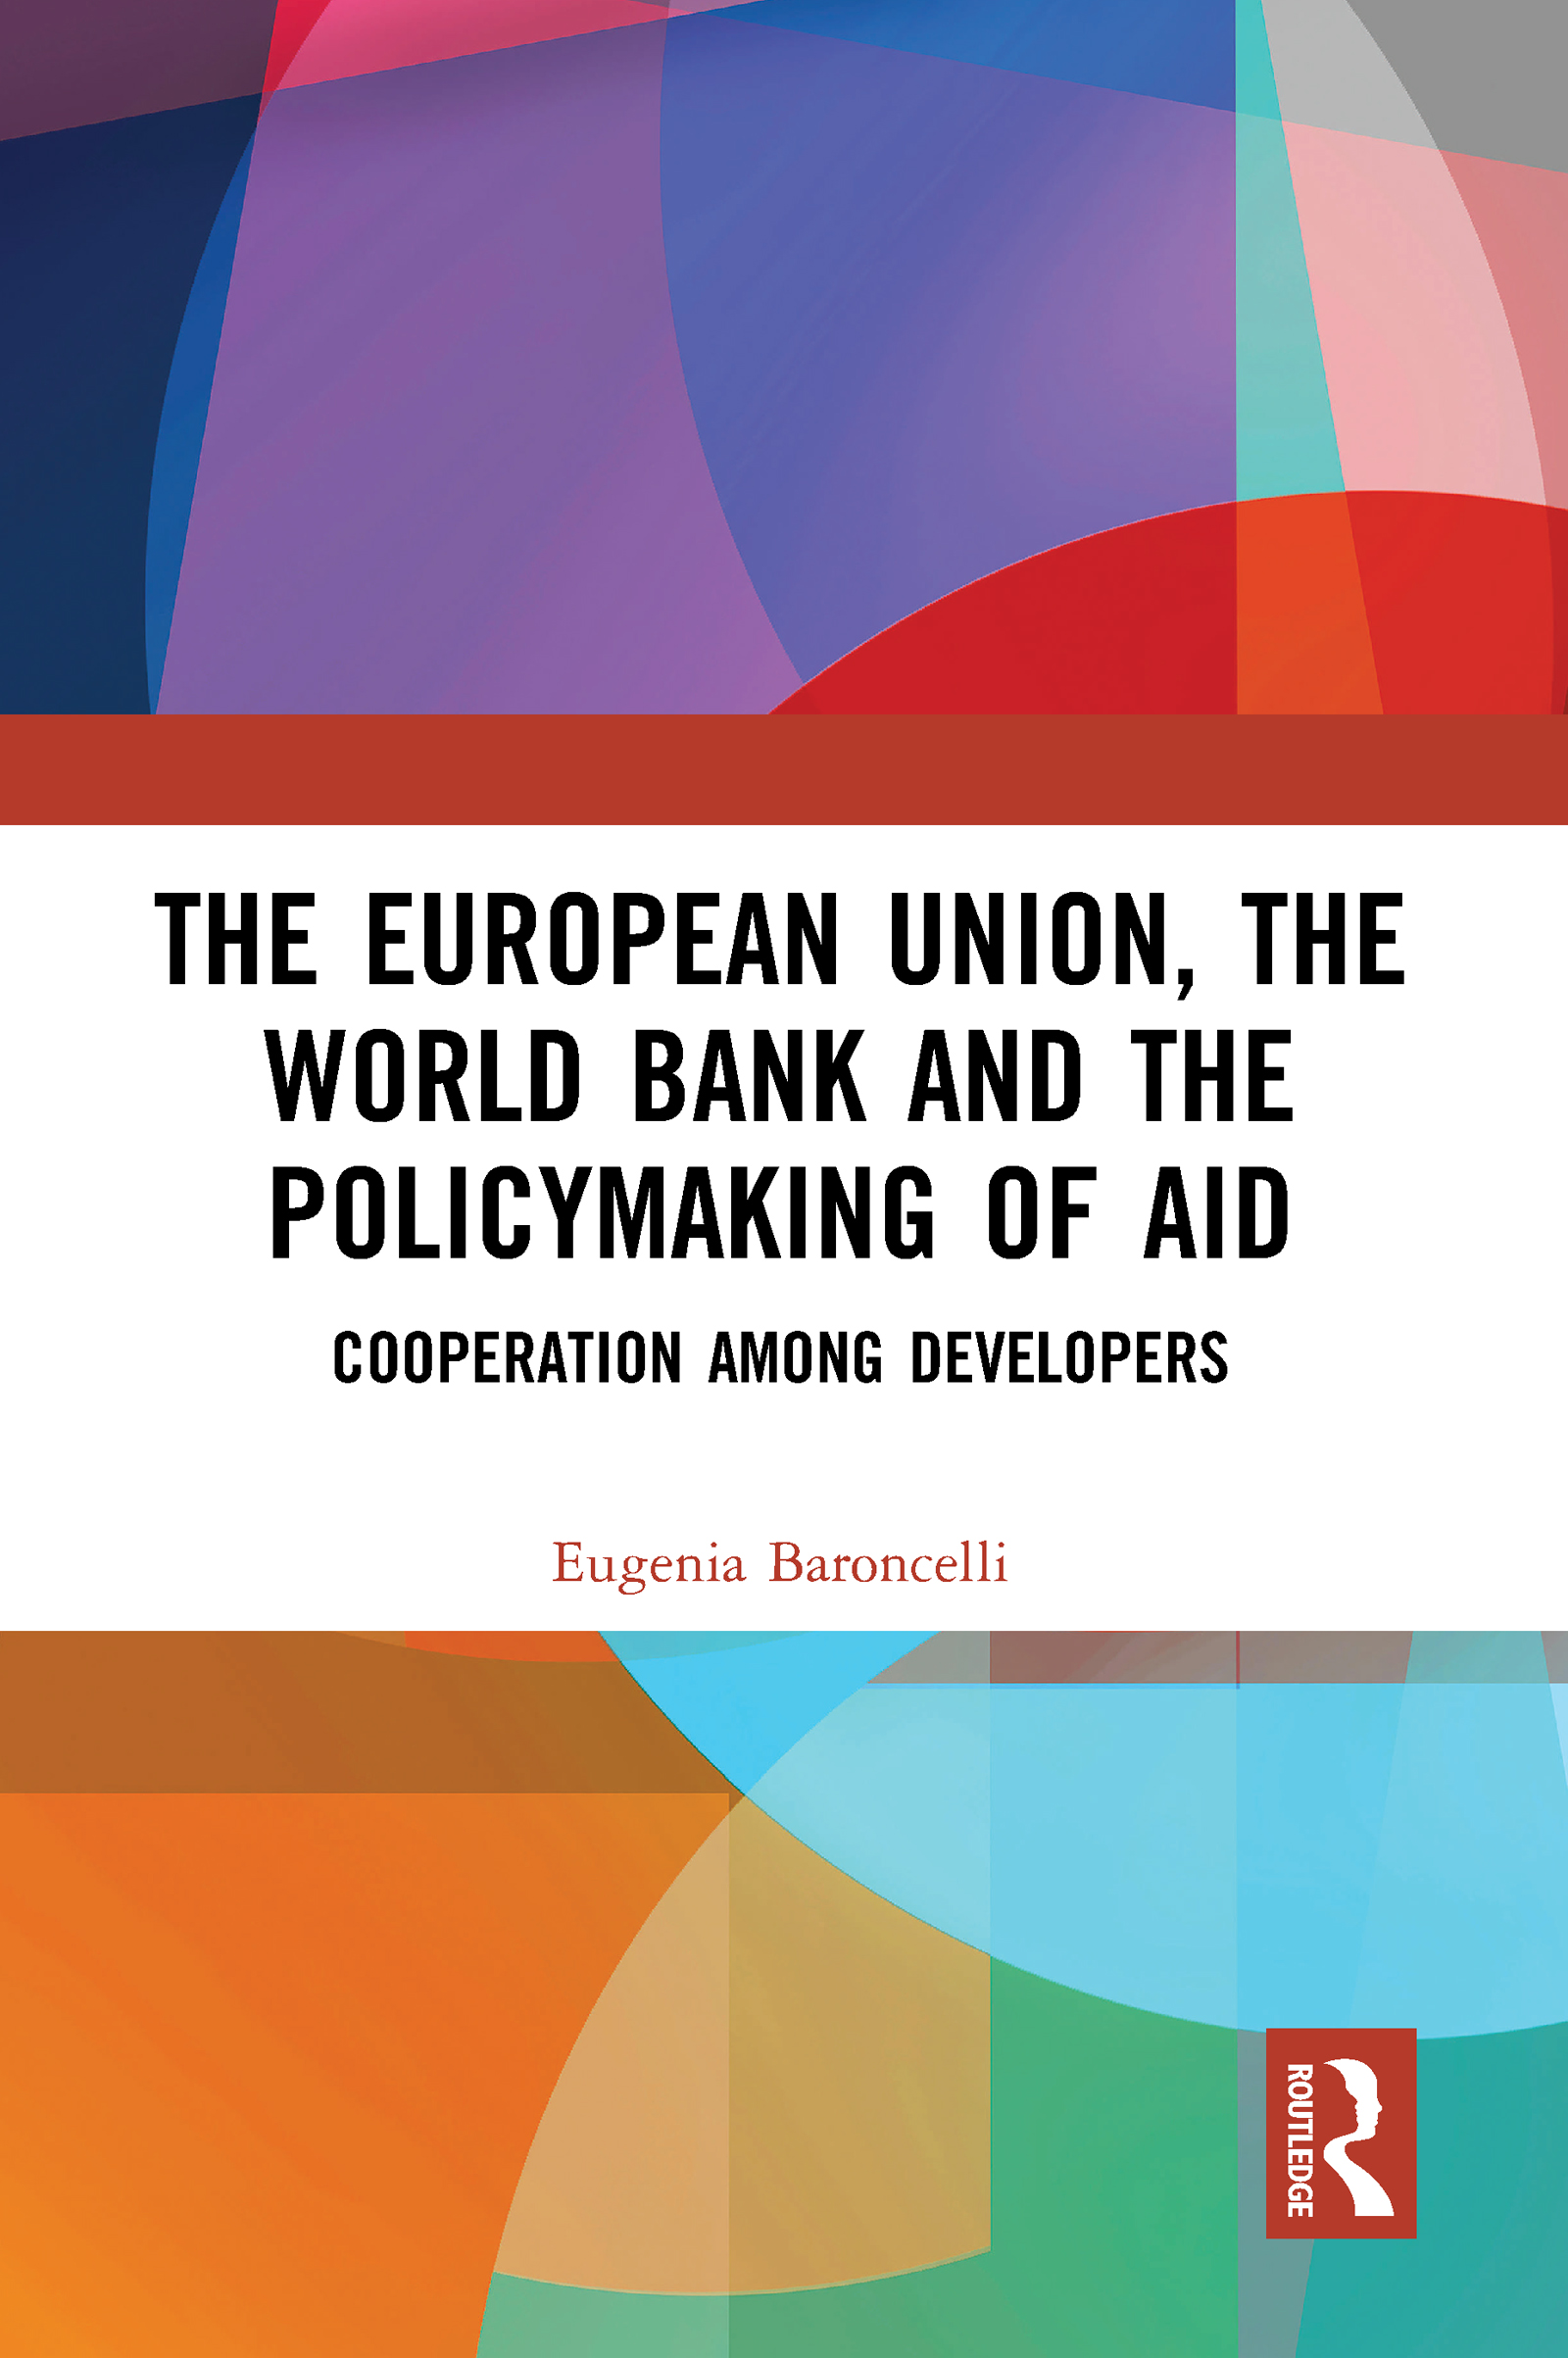 The European Union, the World Bank and the Policymaking of Aid